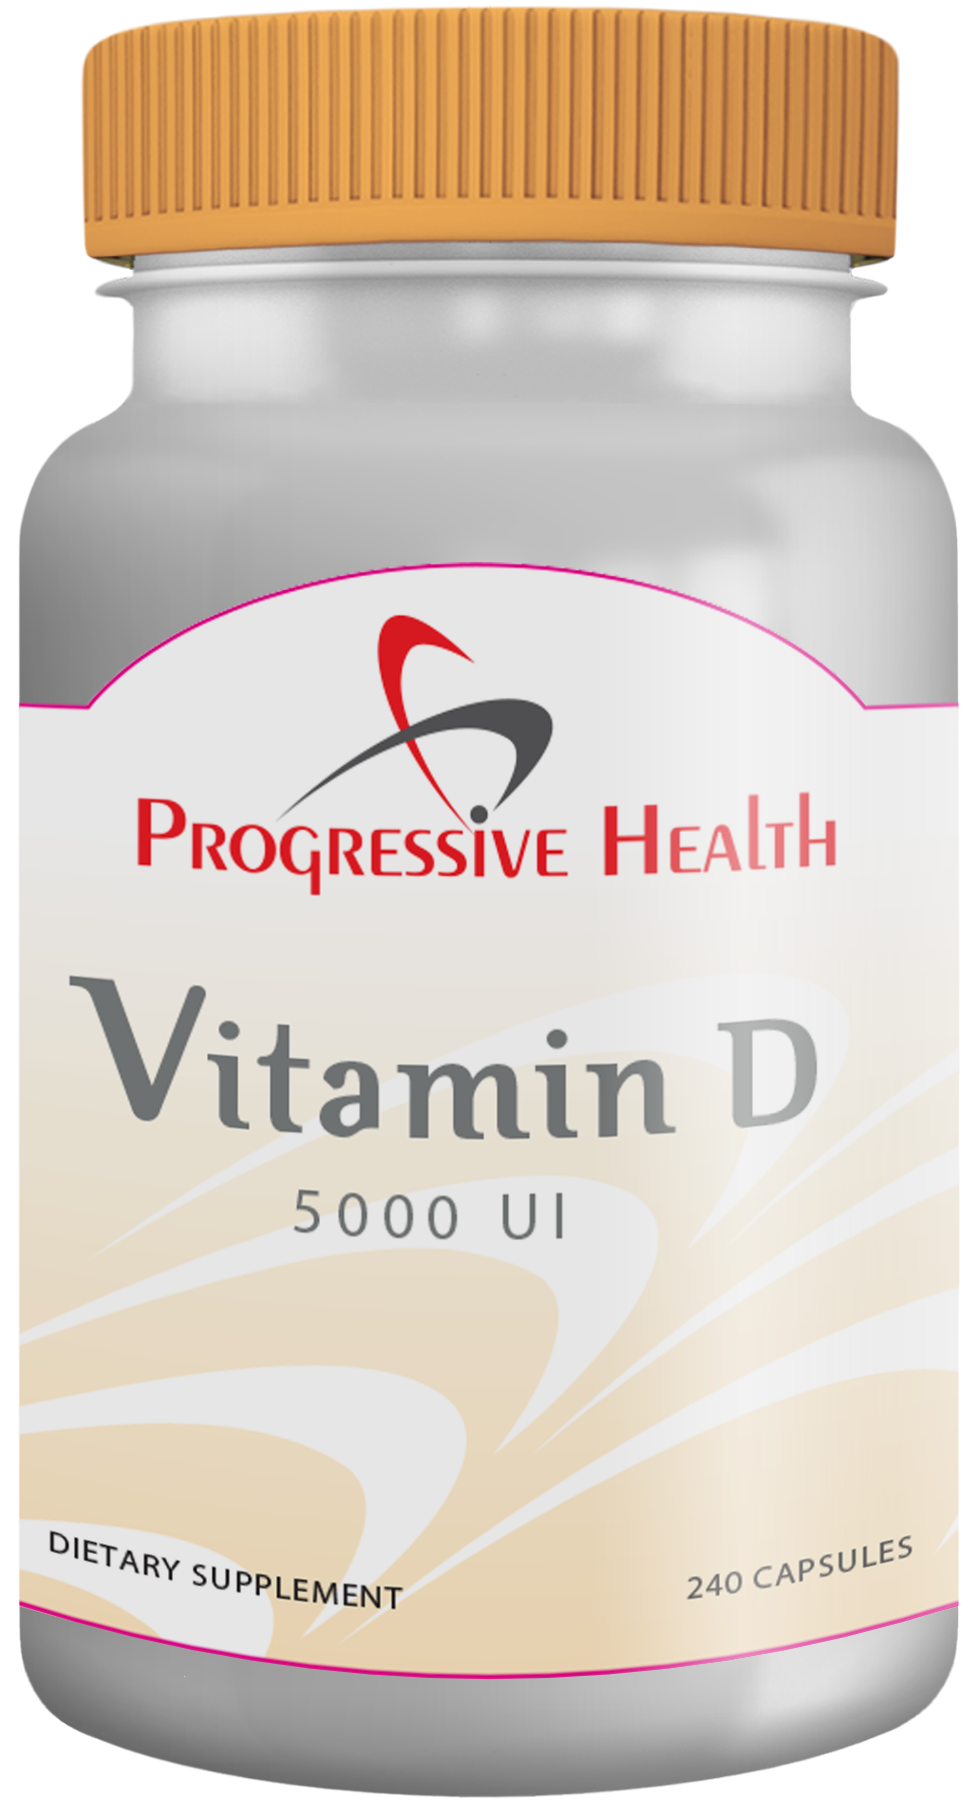 WHY VITAMIN D IS BETTER THAN THE FLU VACCINE